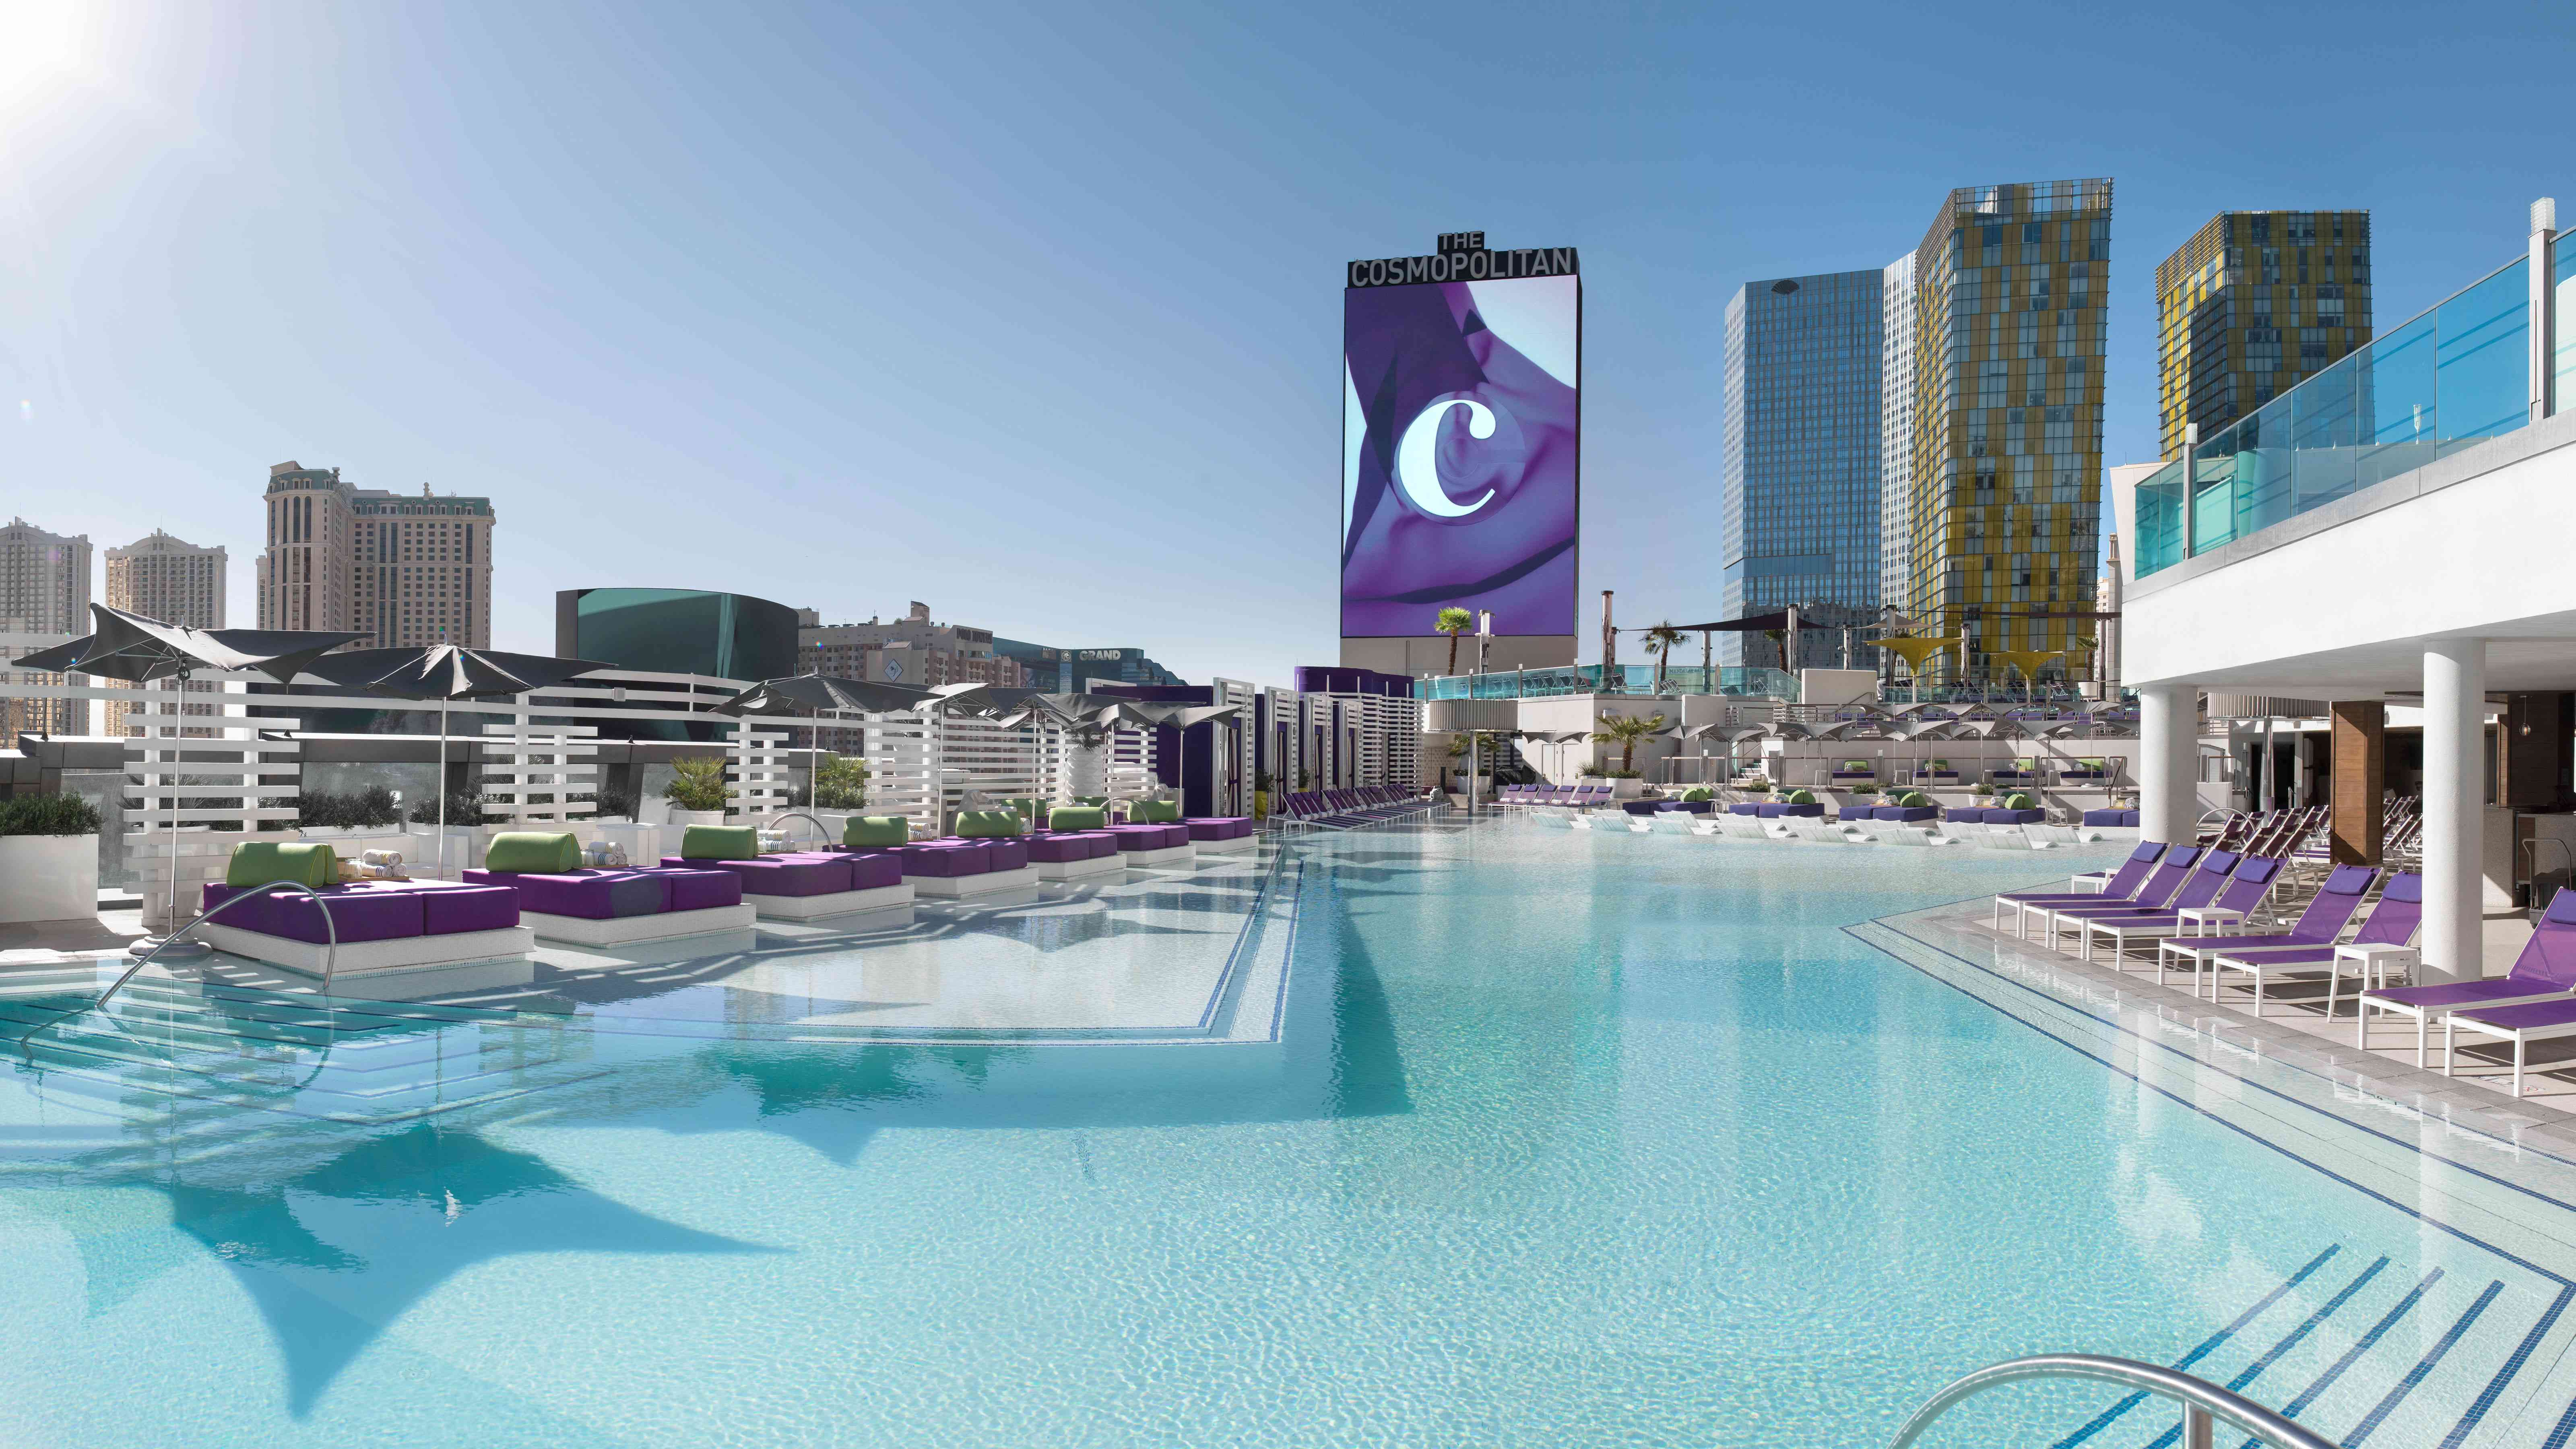 Large plunge pool at the Cosmopolitan of Las Vegas with purple beach chairs and beds